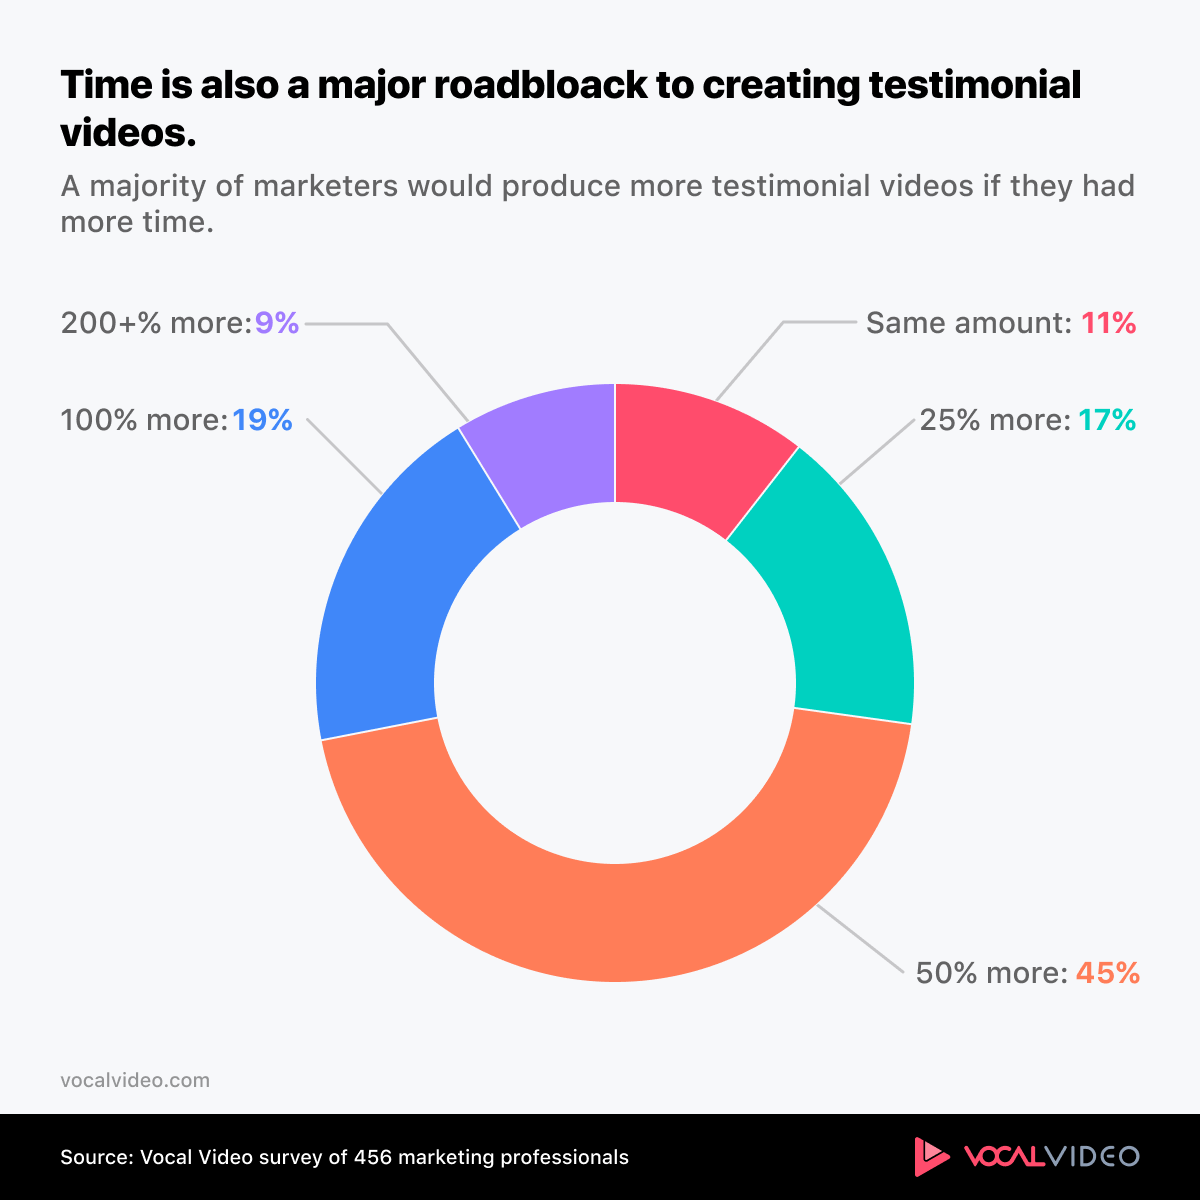 Chart showing the majority of marketers would create more testimonial videos with more time.